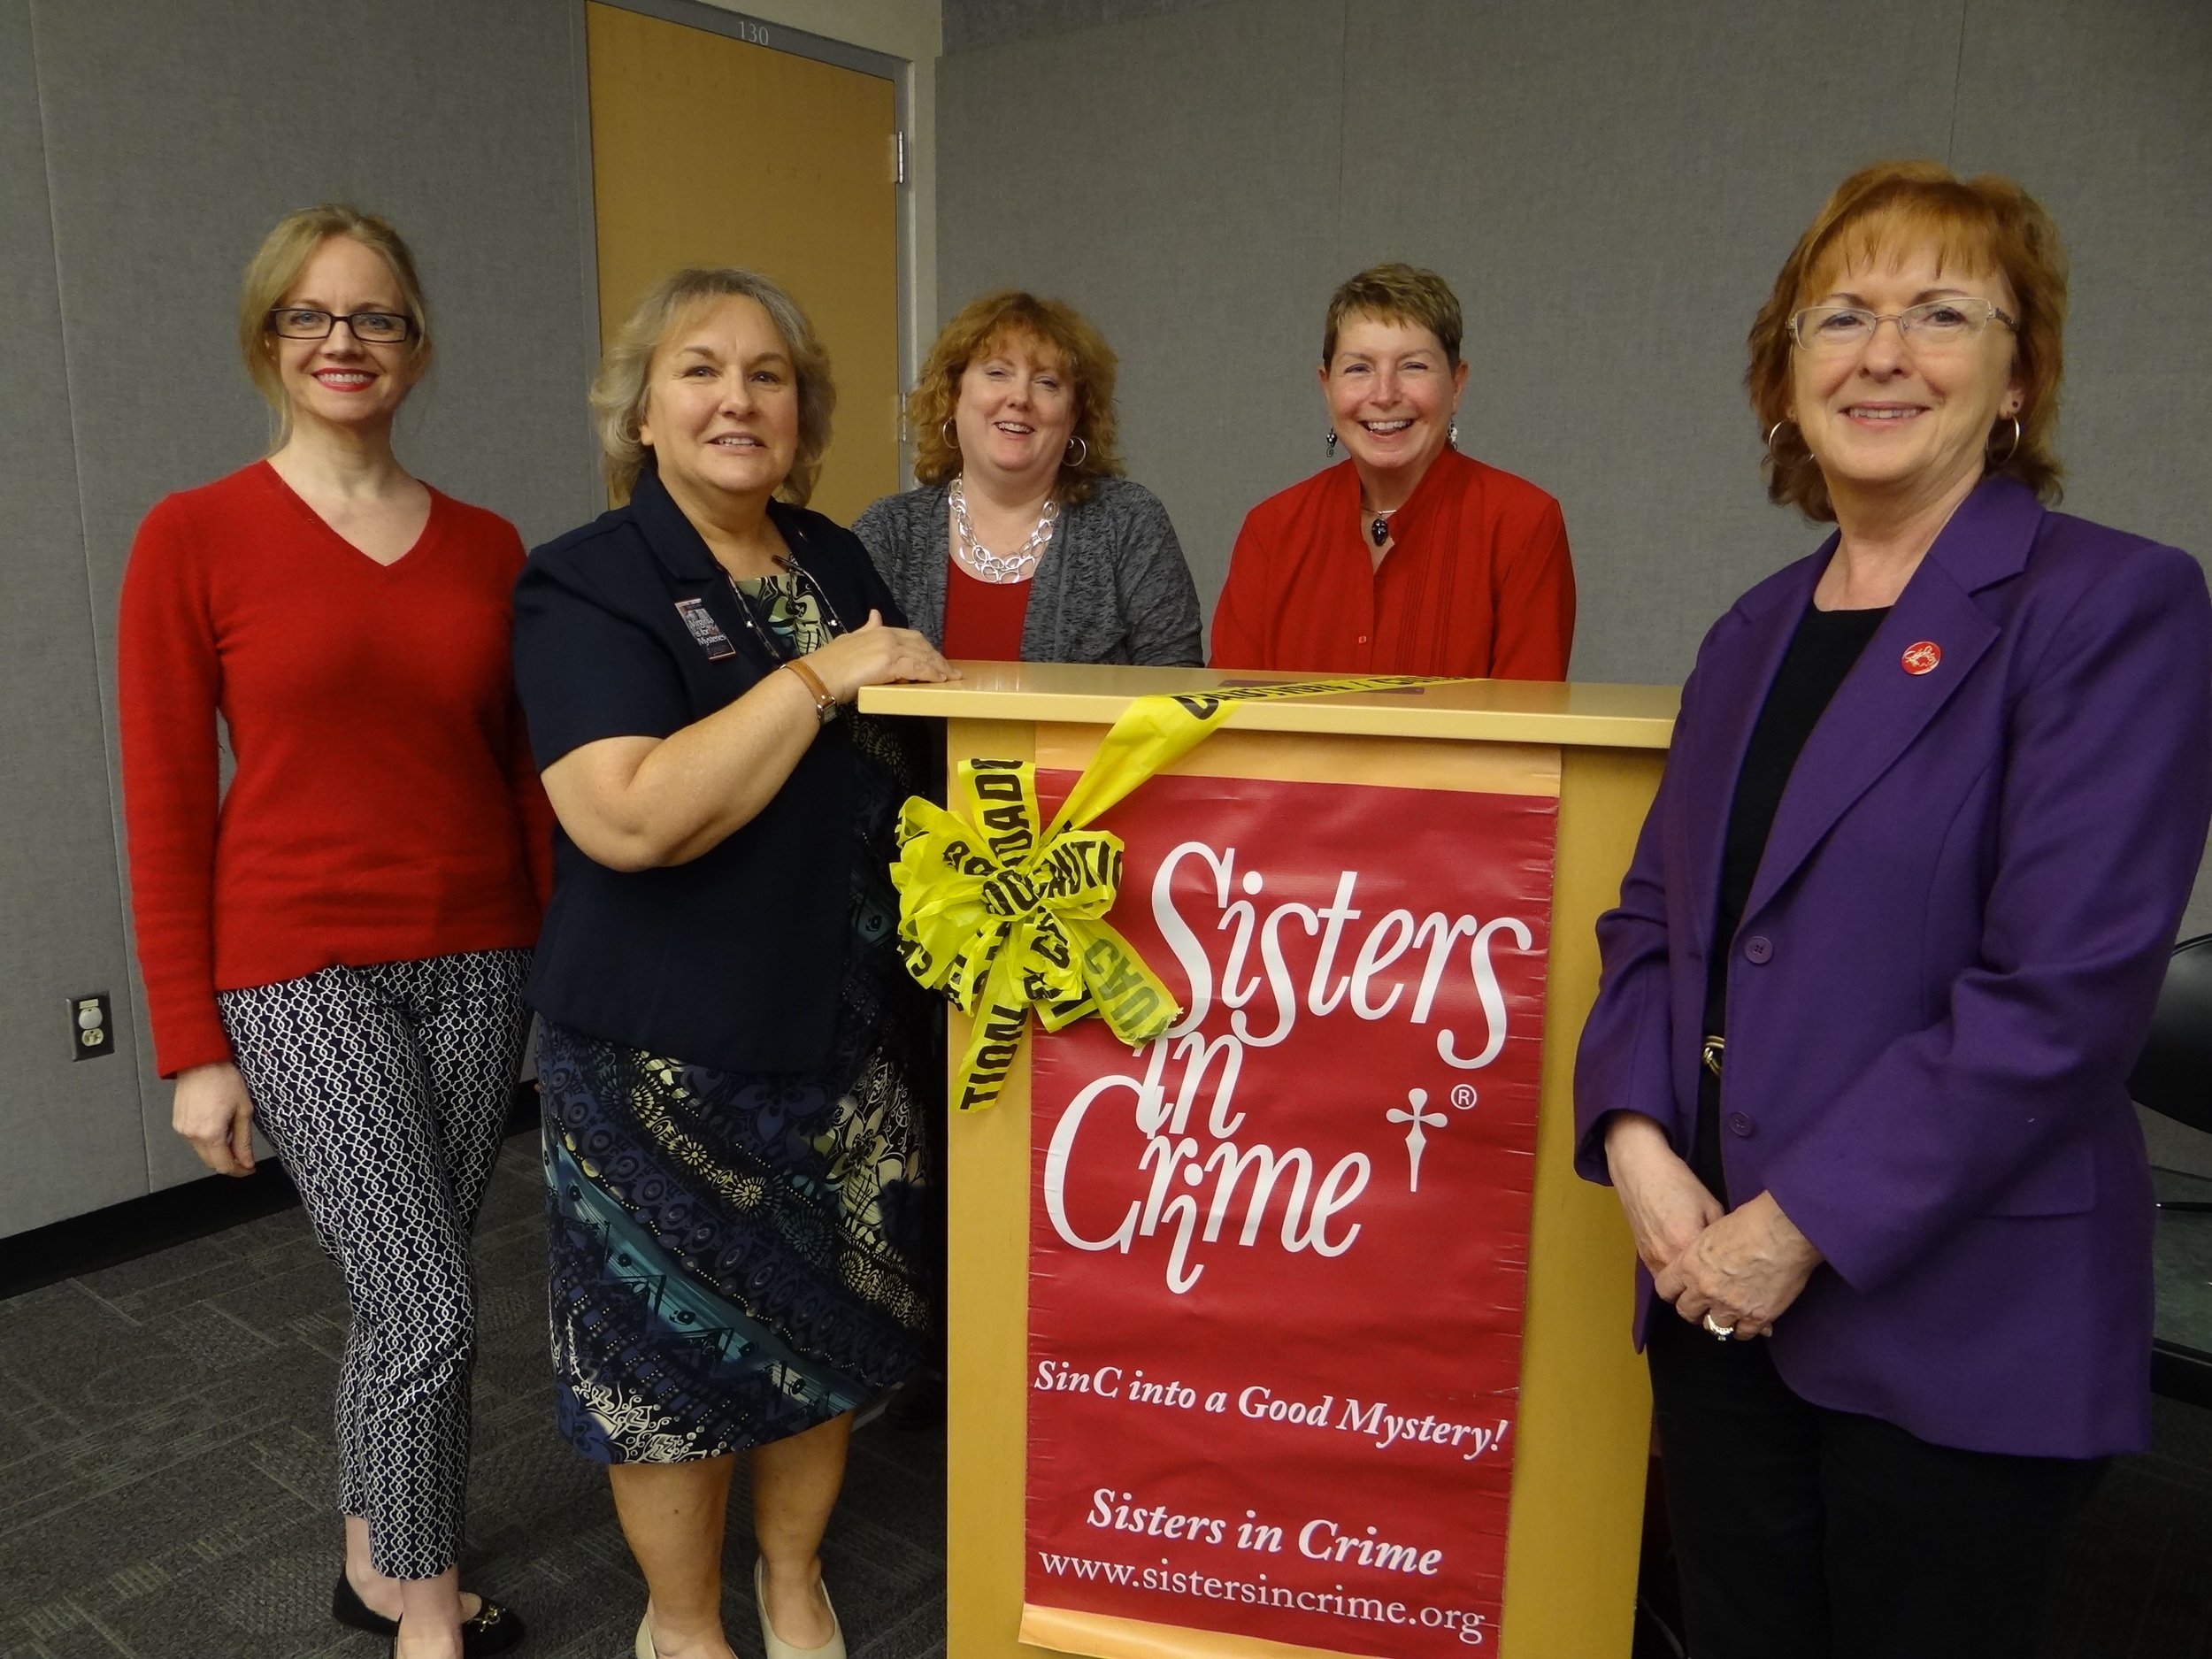 L-R: Fiona Quinn, Rosemary Shomaker, Heather Weidner, Vivian Lawry, and Maggie King